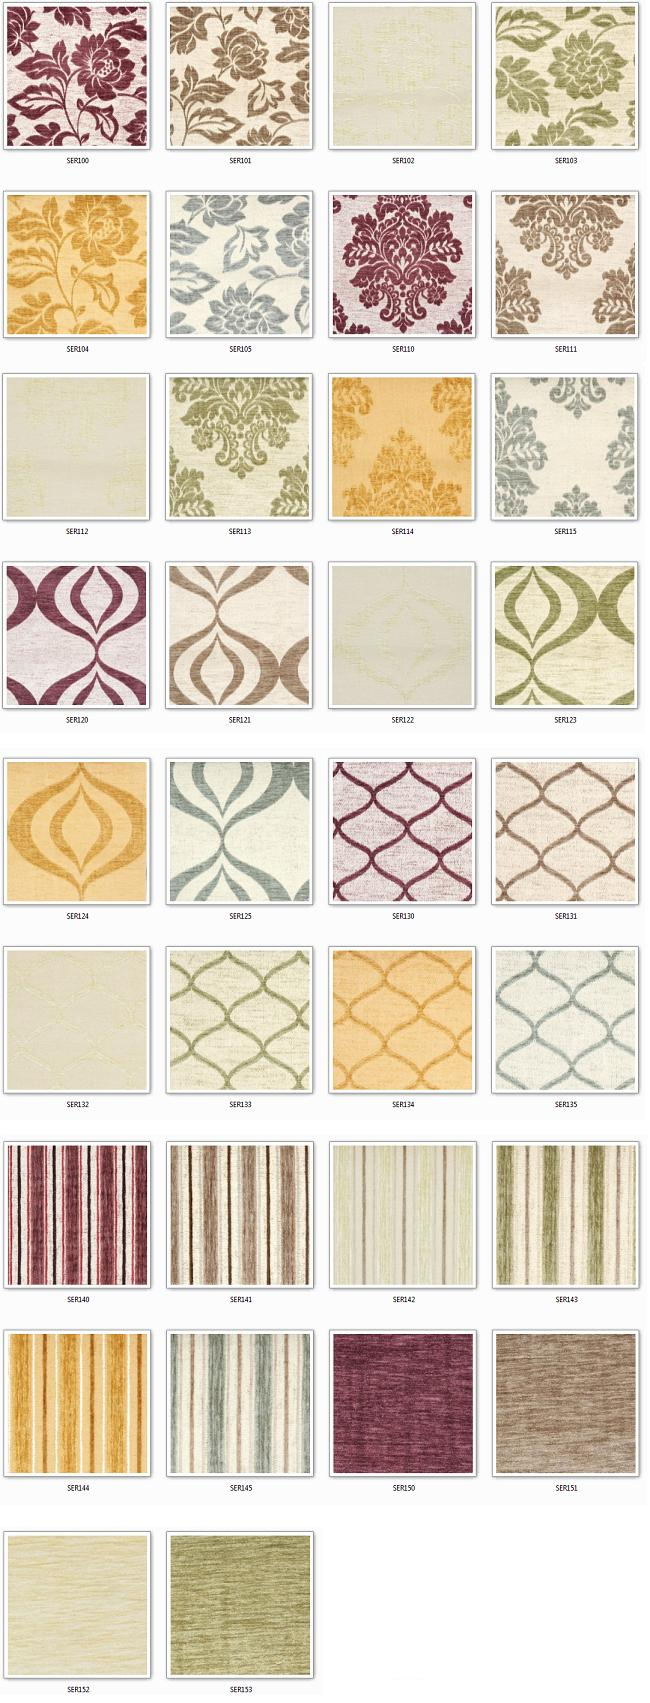 Serenata Samples by Covertex